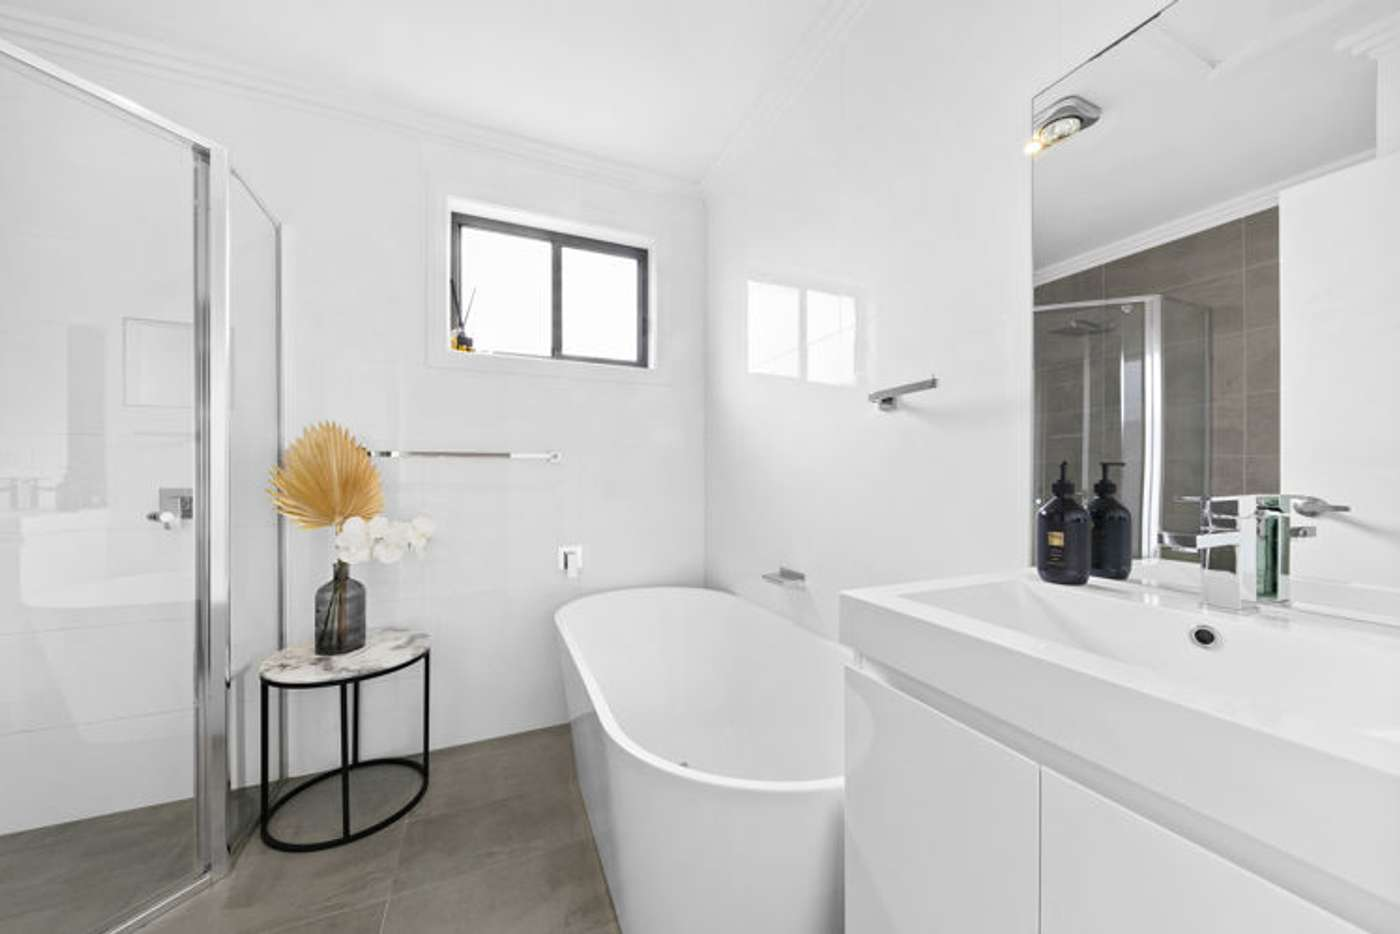 Sixth view of Homely house listing, 166 Chetwynd Road, Guildford NSW 2161